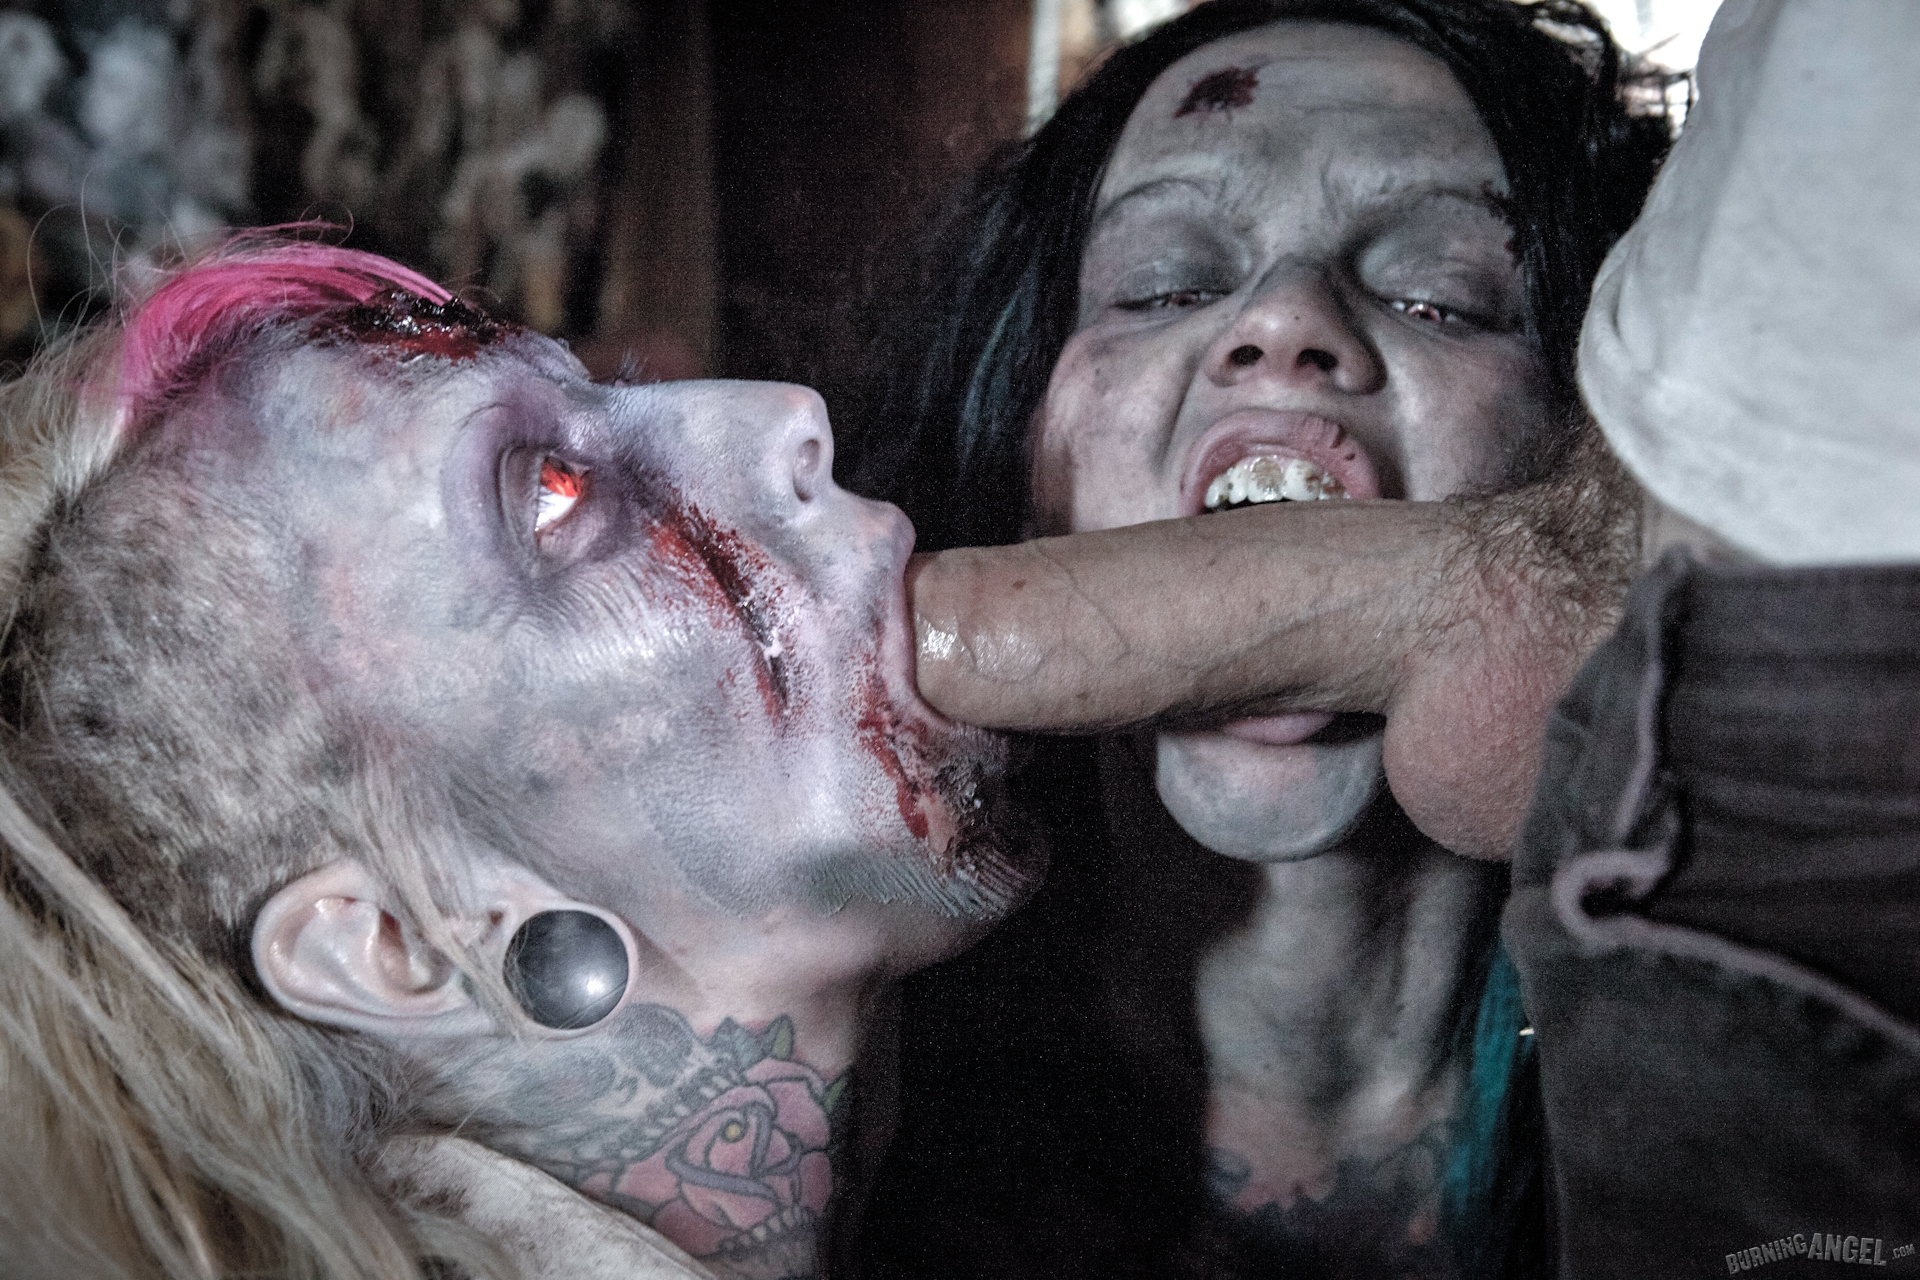 Zombie girl cunt porn video